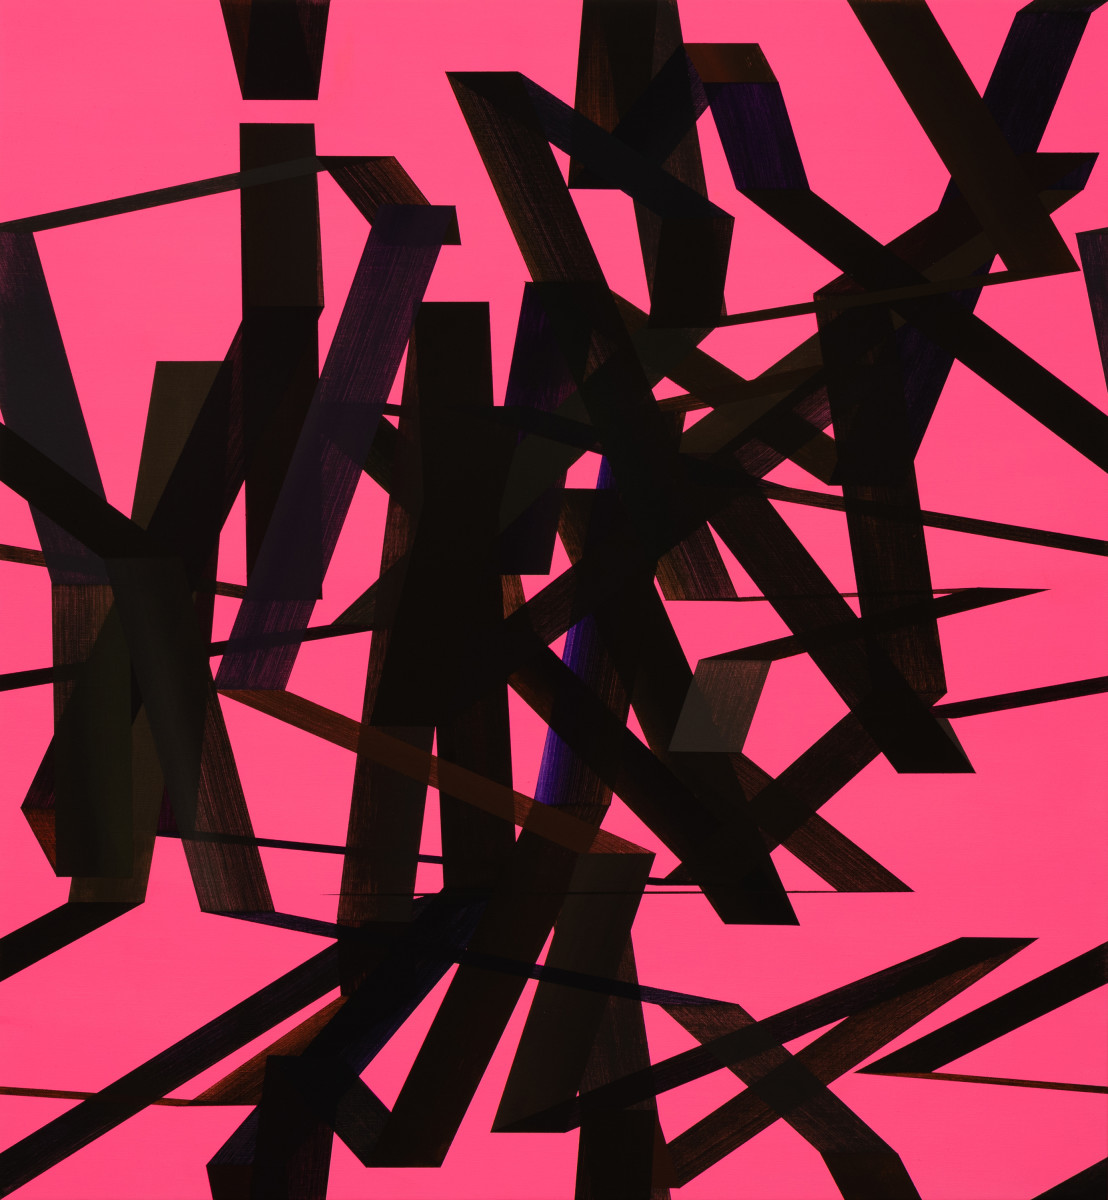 Construction (Pink) by Jeff Perrott